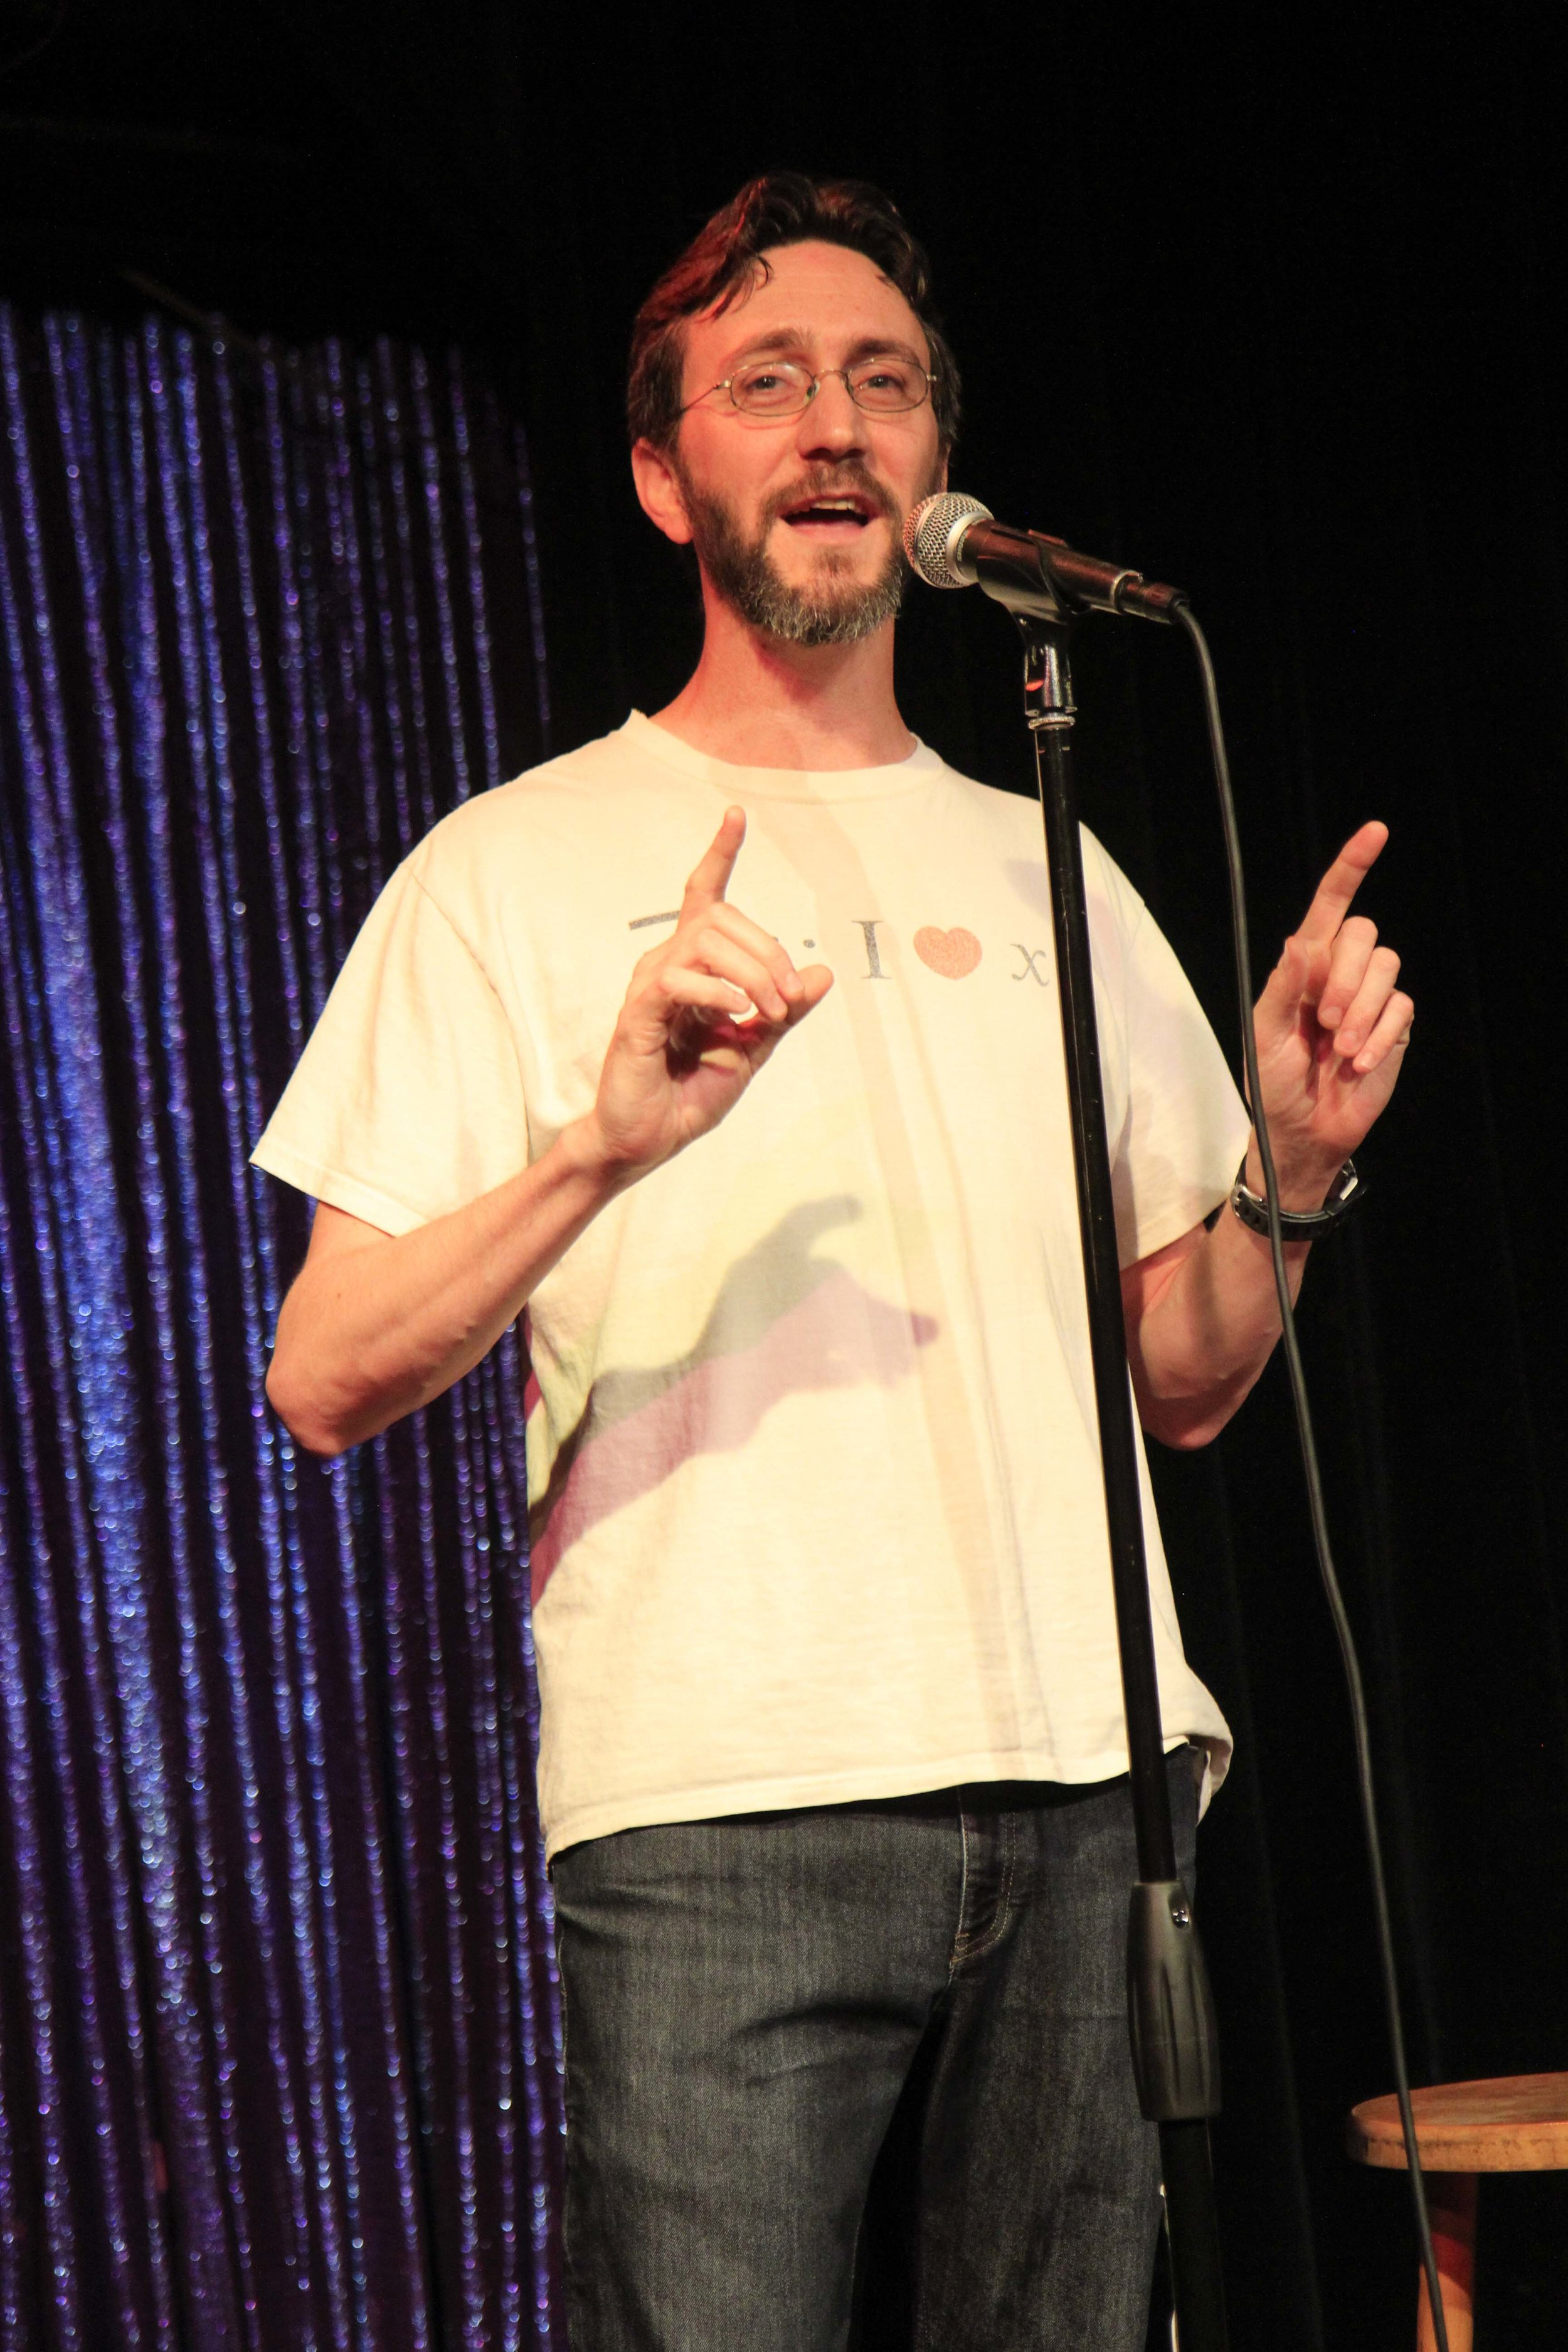 Seth Cottrell shares his story at the Lyric Hyperion in Los Angeles. Photo by Mari Provencher.